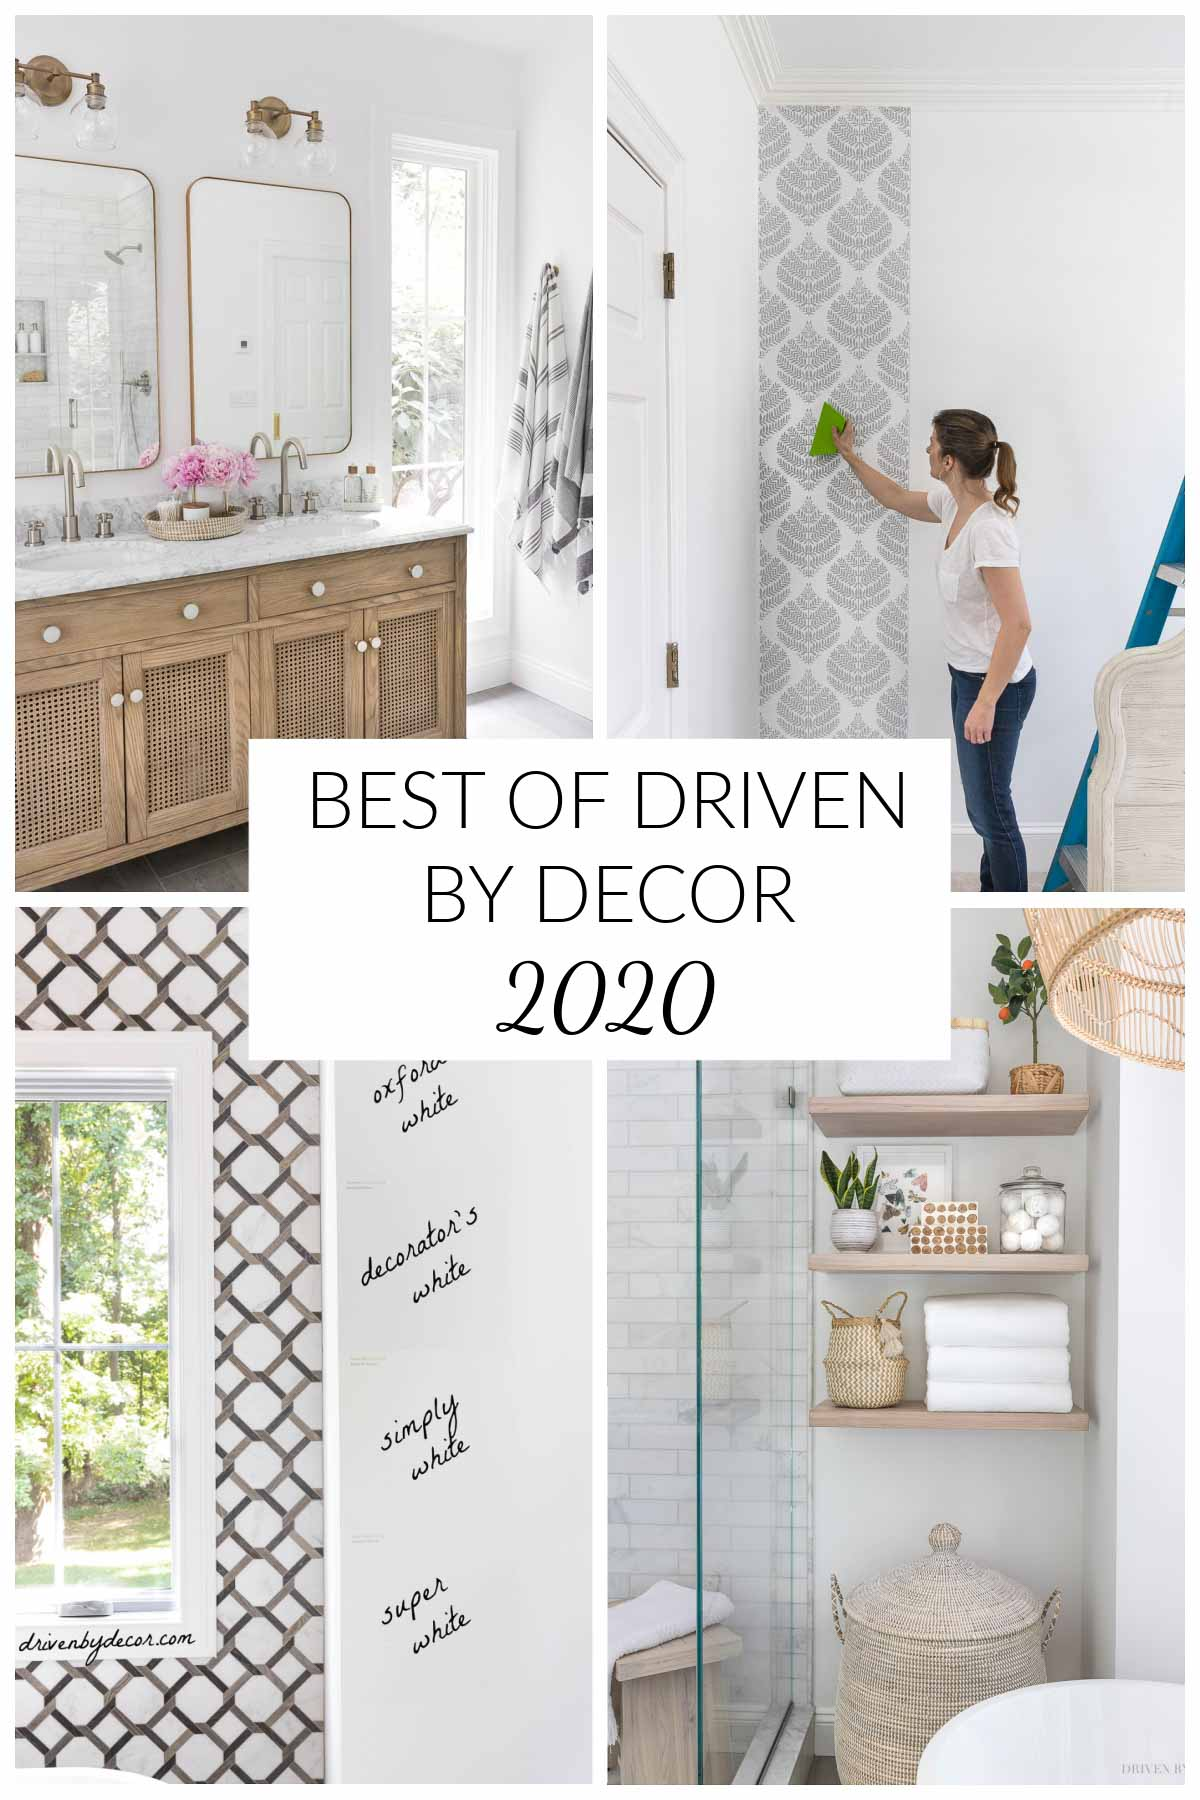 Best of Driven by Decor - 2020!